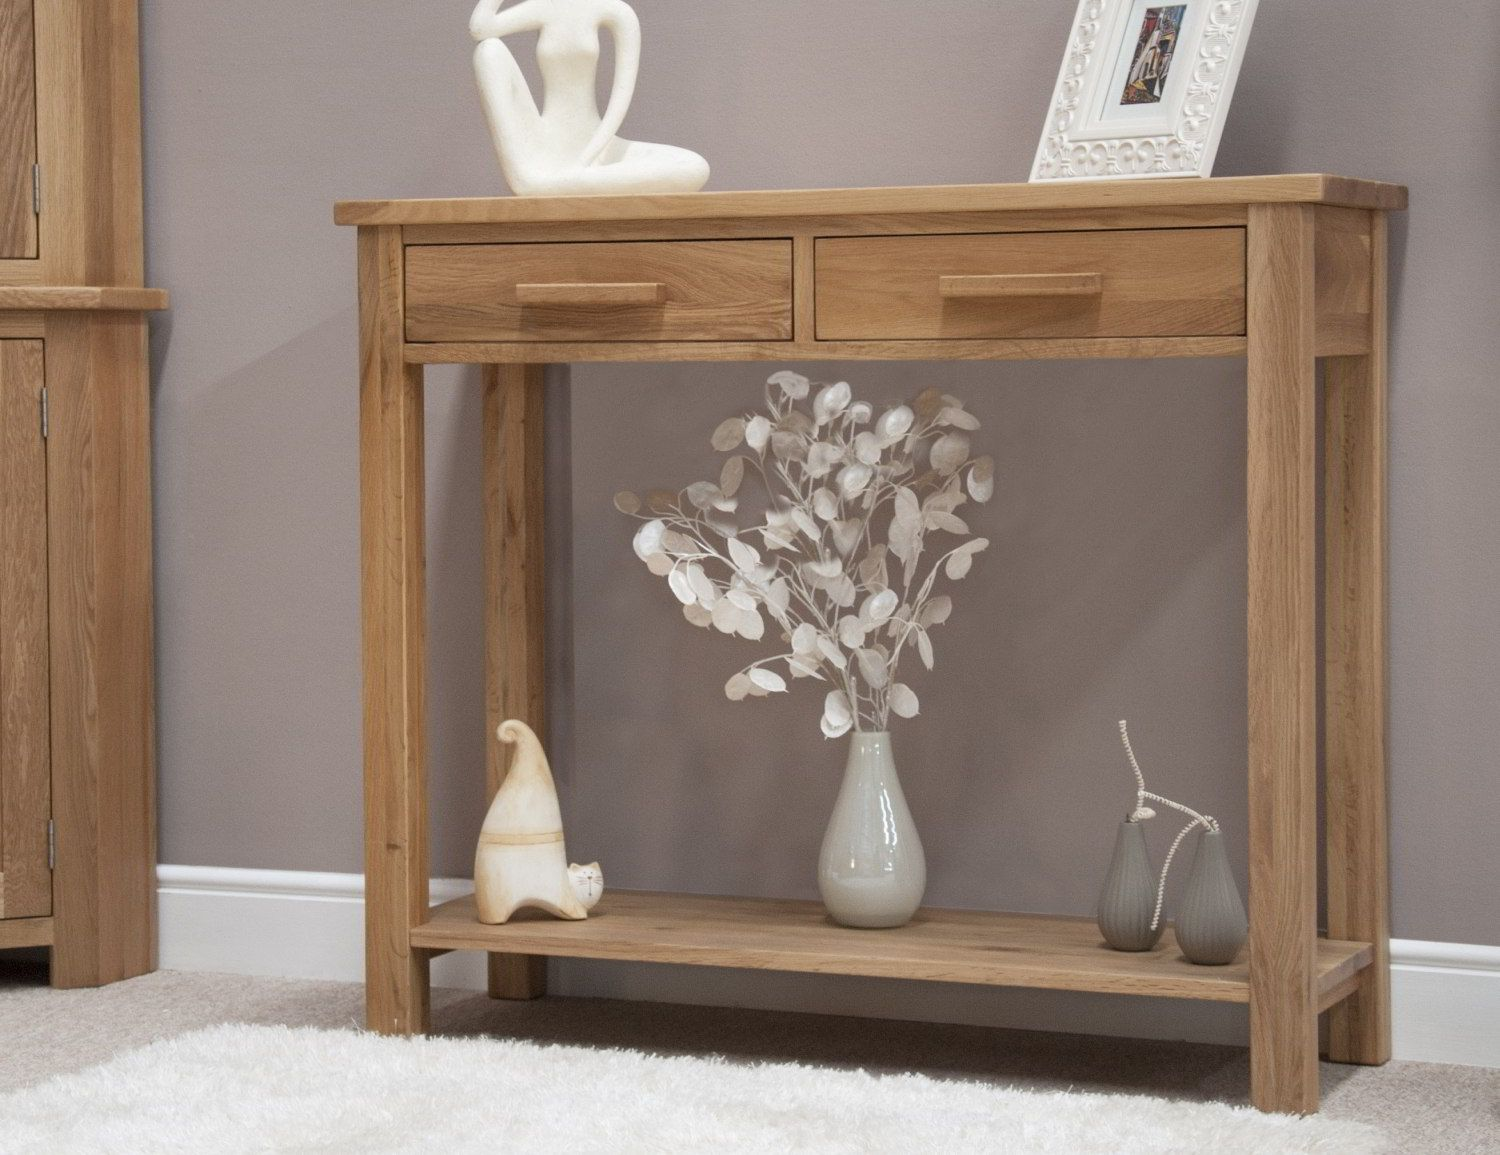 Solid Oak Modern Hallway Console Table In Nice Hall Jpg 1 500